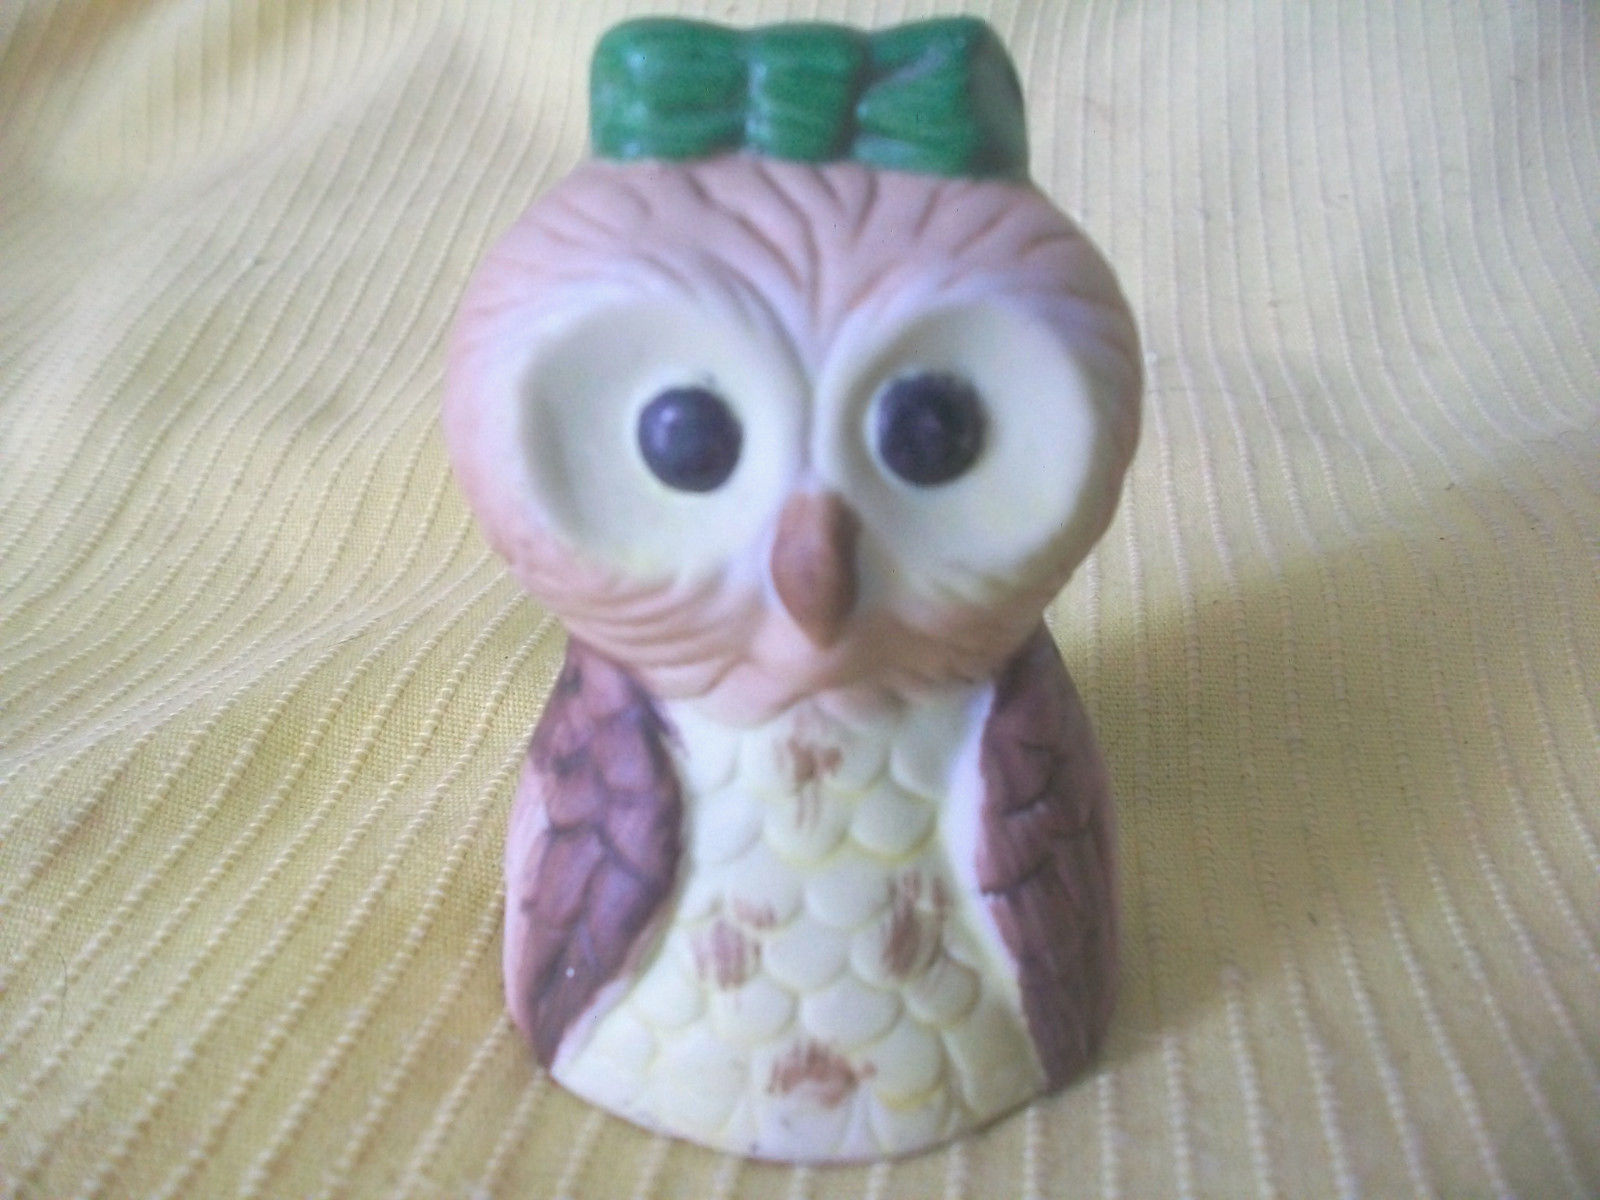 2 OWL FIGURINES 1 PORCELAIN BELL ANIMAL BIRDS CERAMIC VTG DECORATIVE COLLECTIBLE